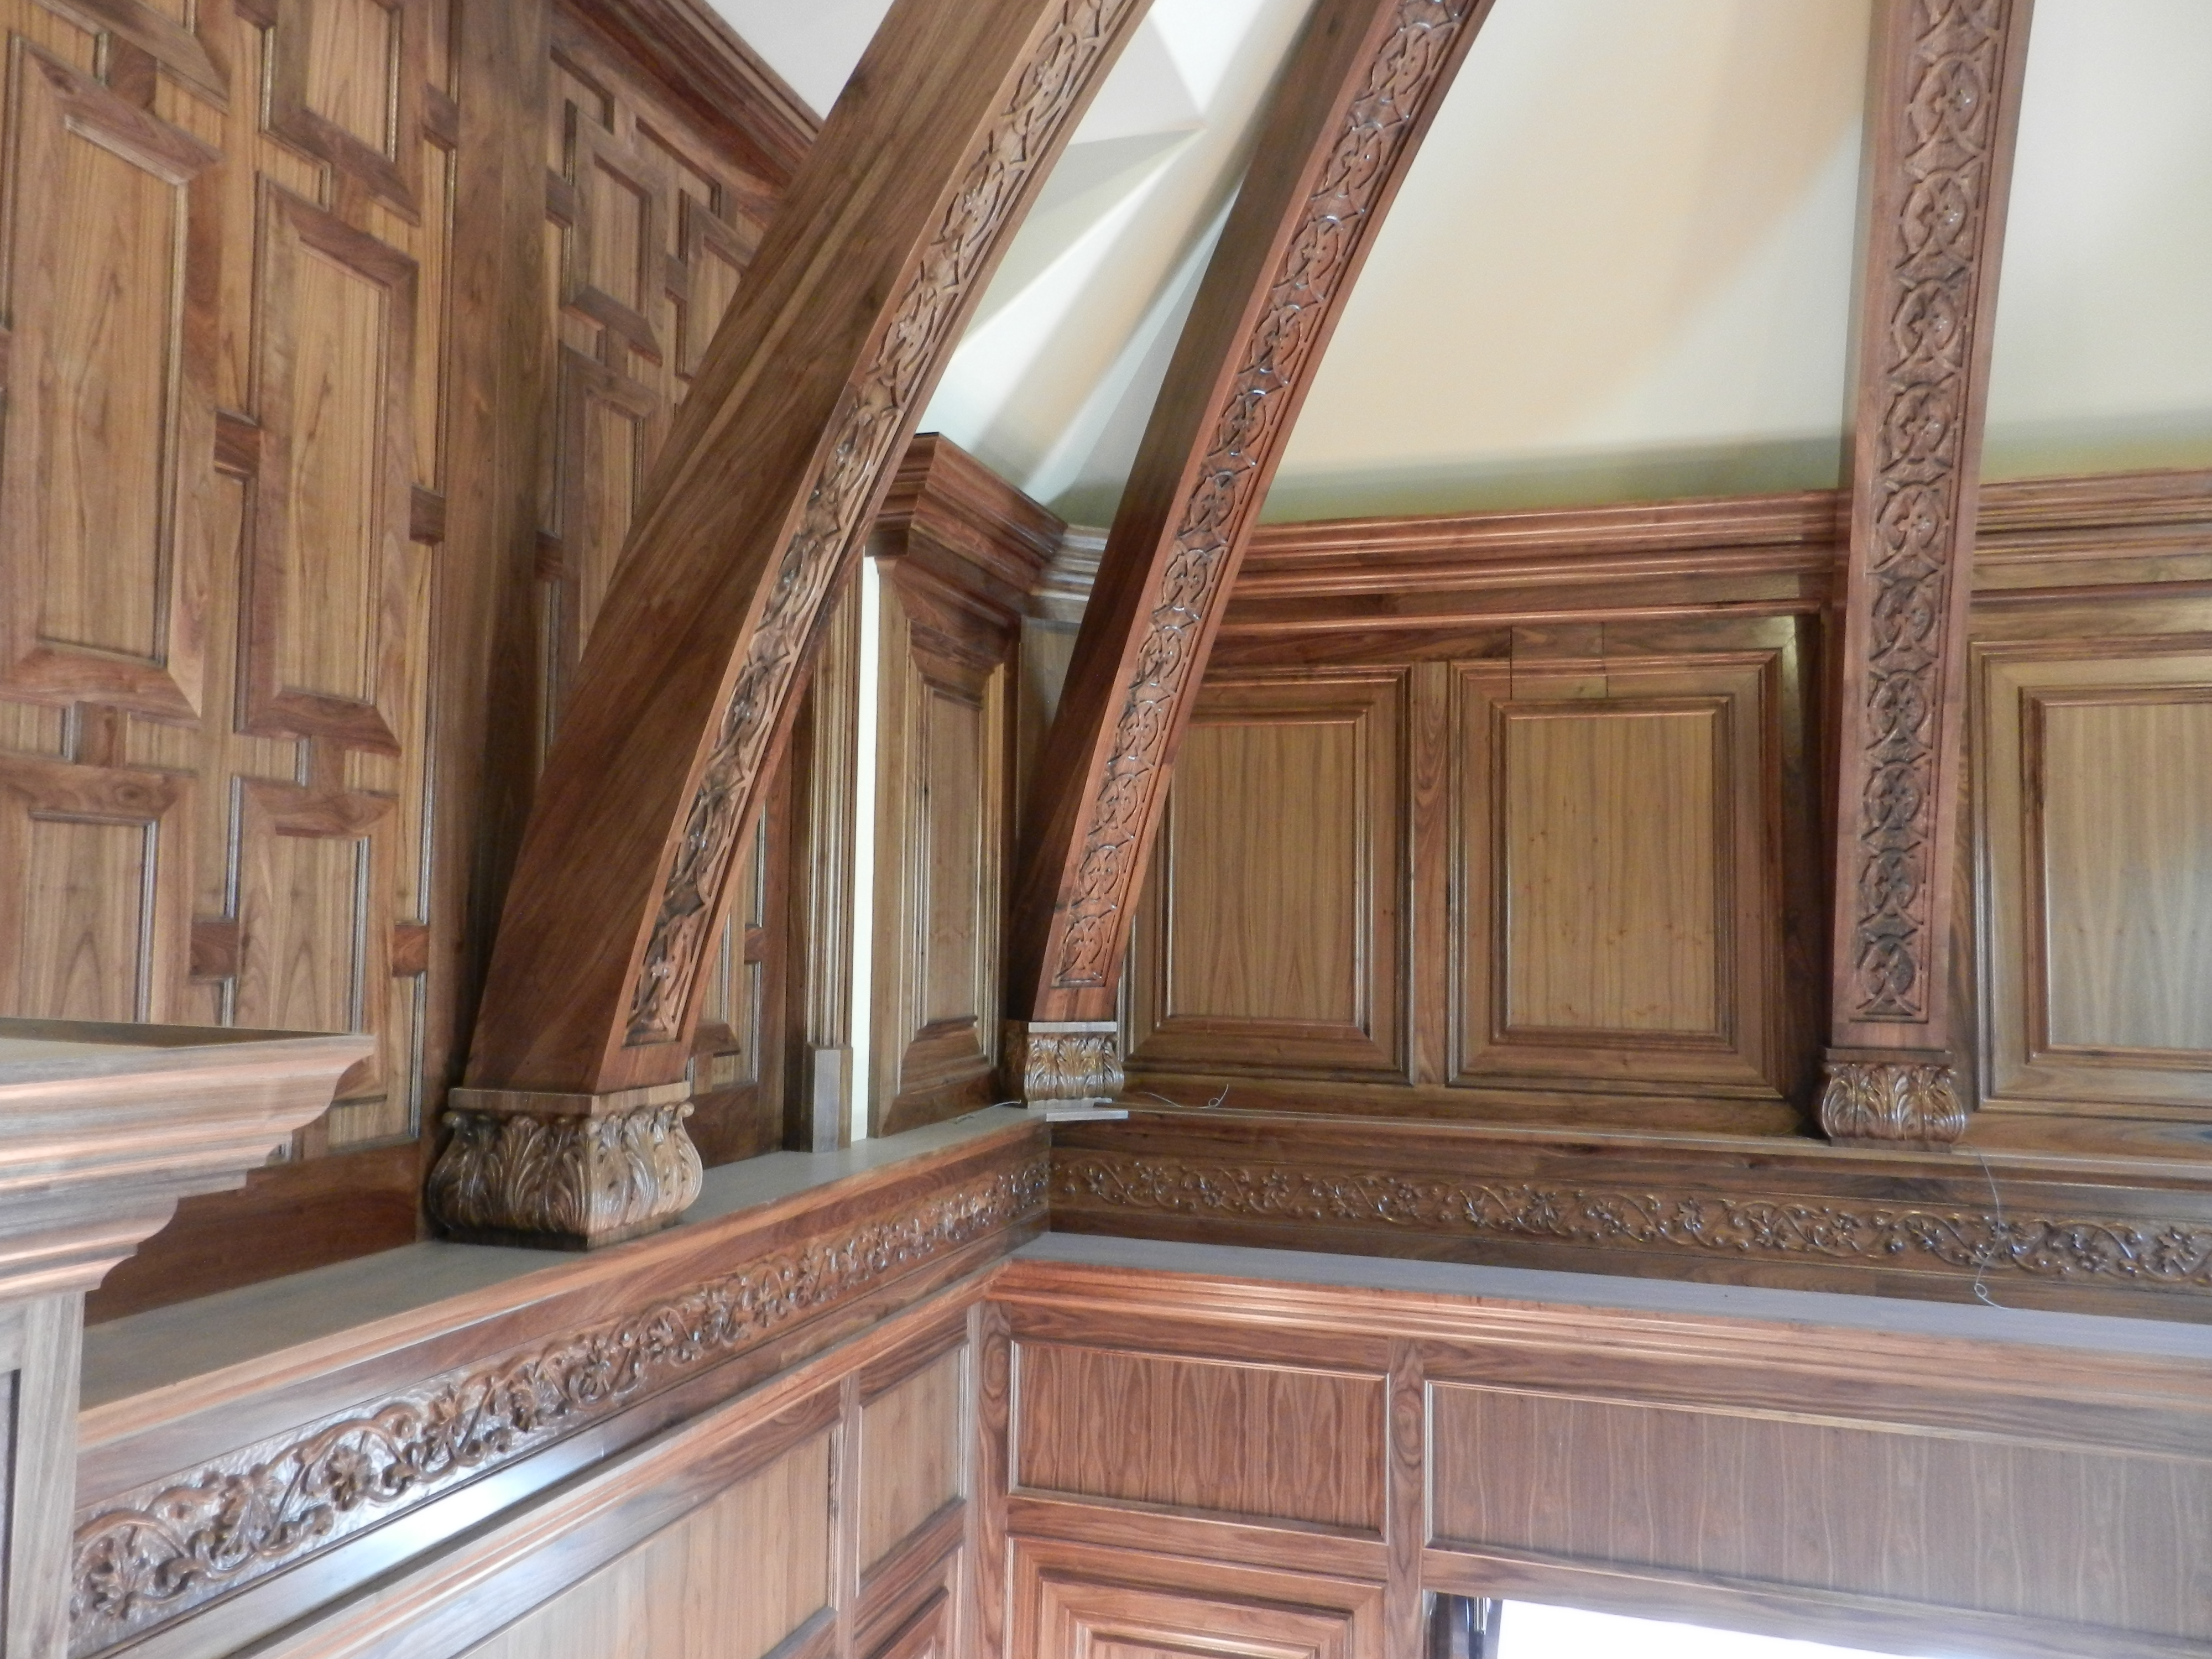 Walnut Carvings and Woodwork